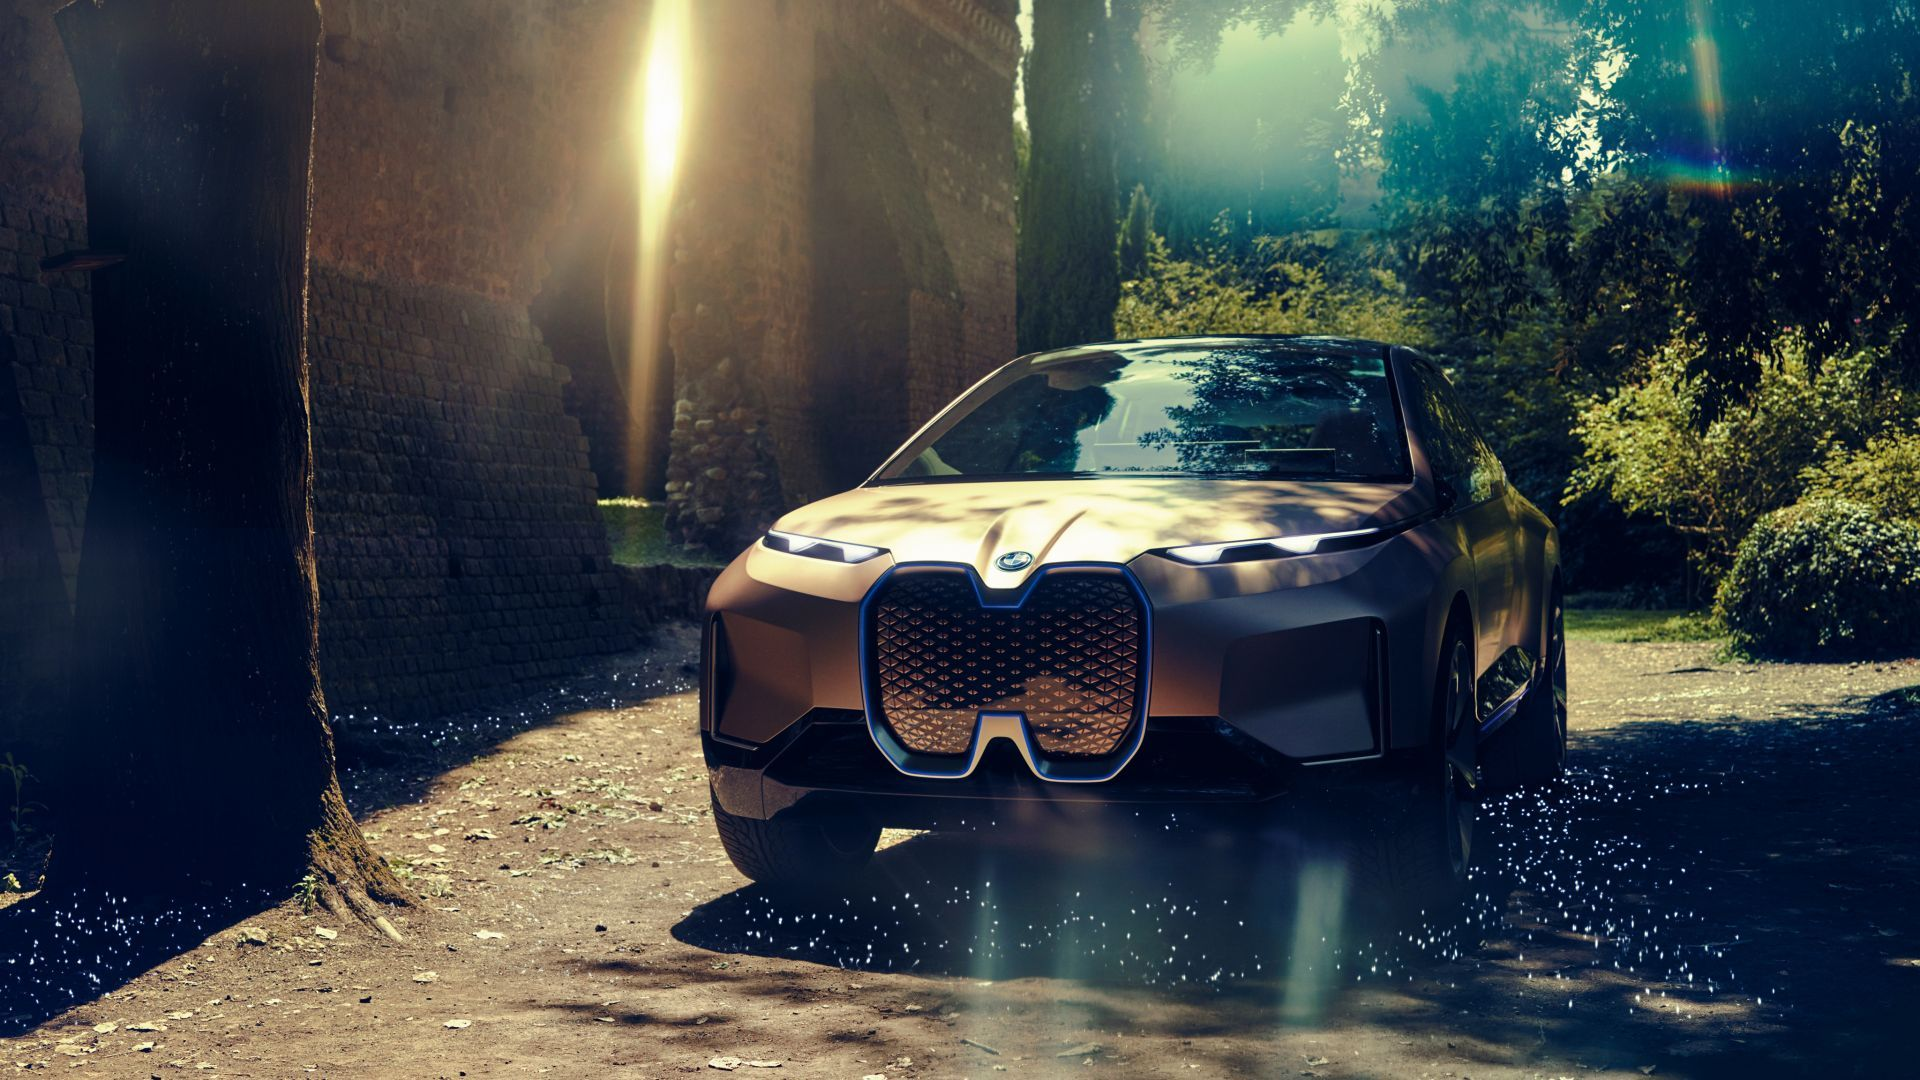 Bmw Vision Inext Suv Electric Cars 4k Horizontal Bmw Bmw S Electric Cars